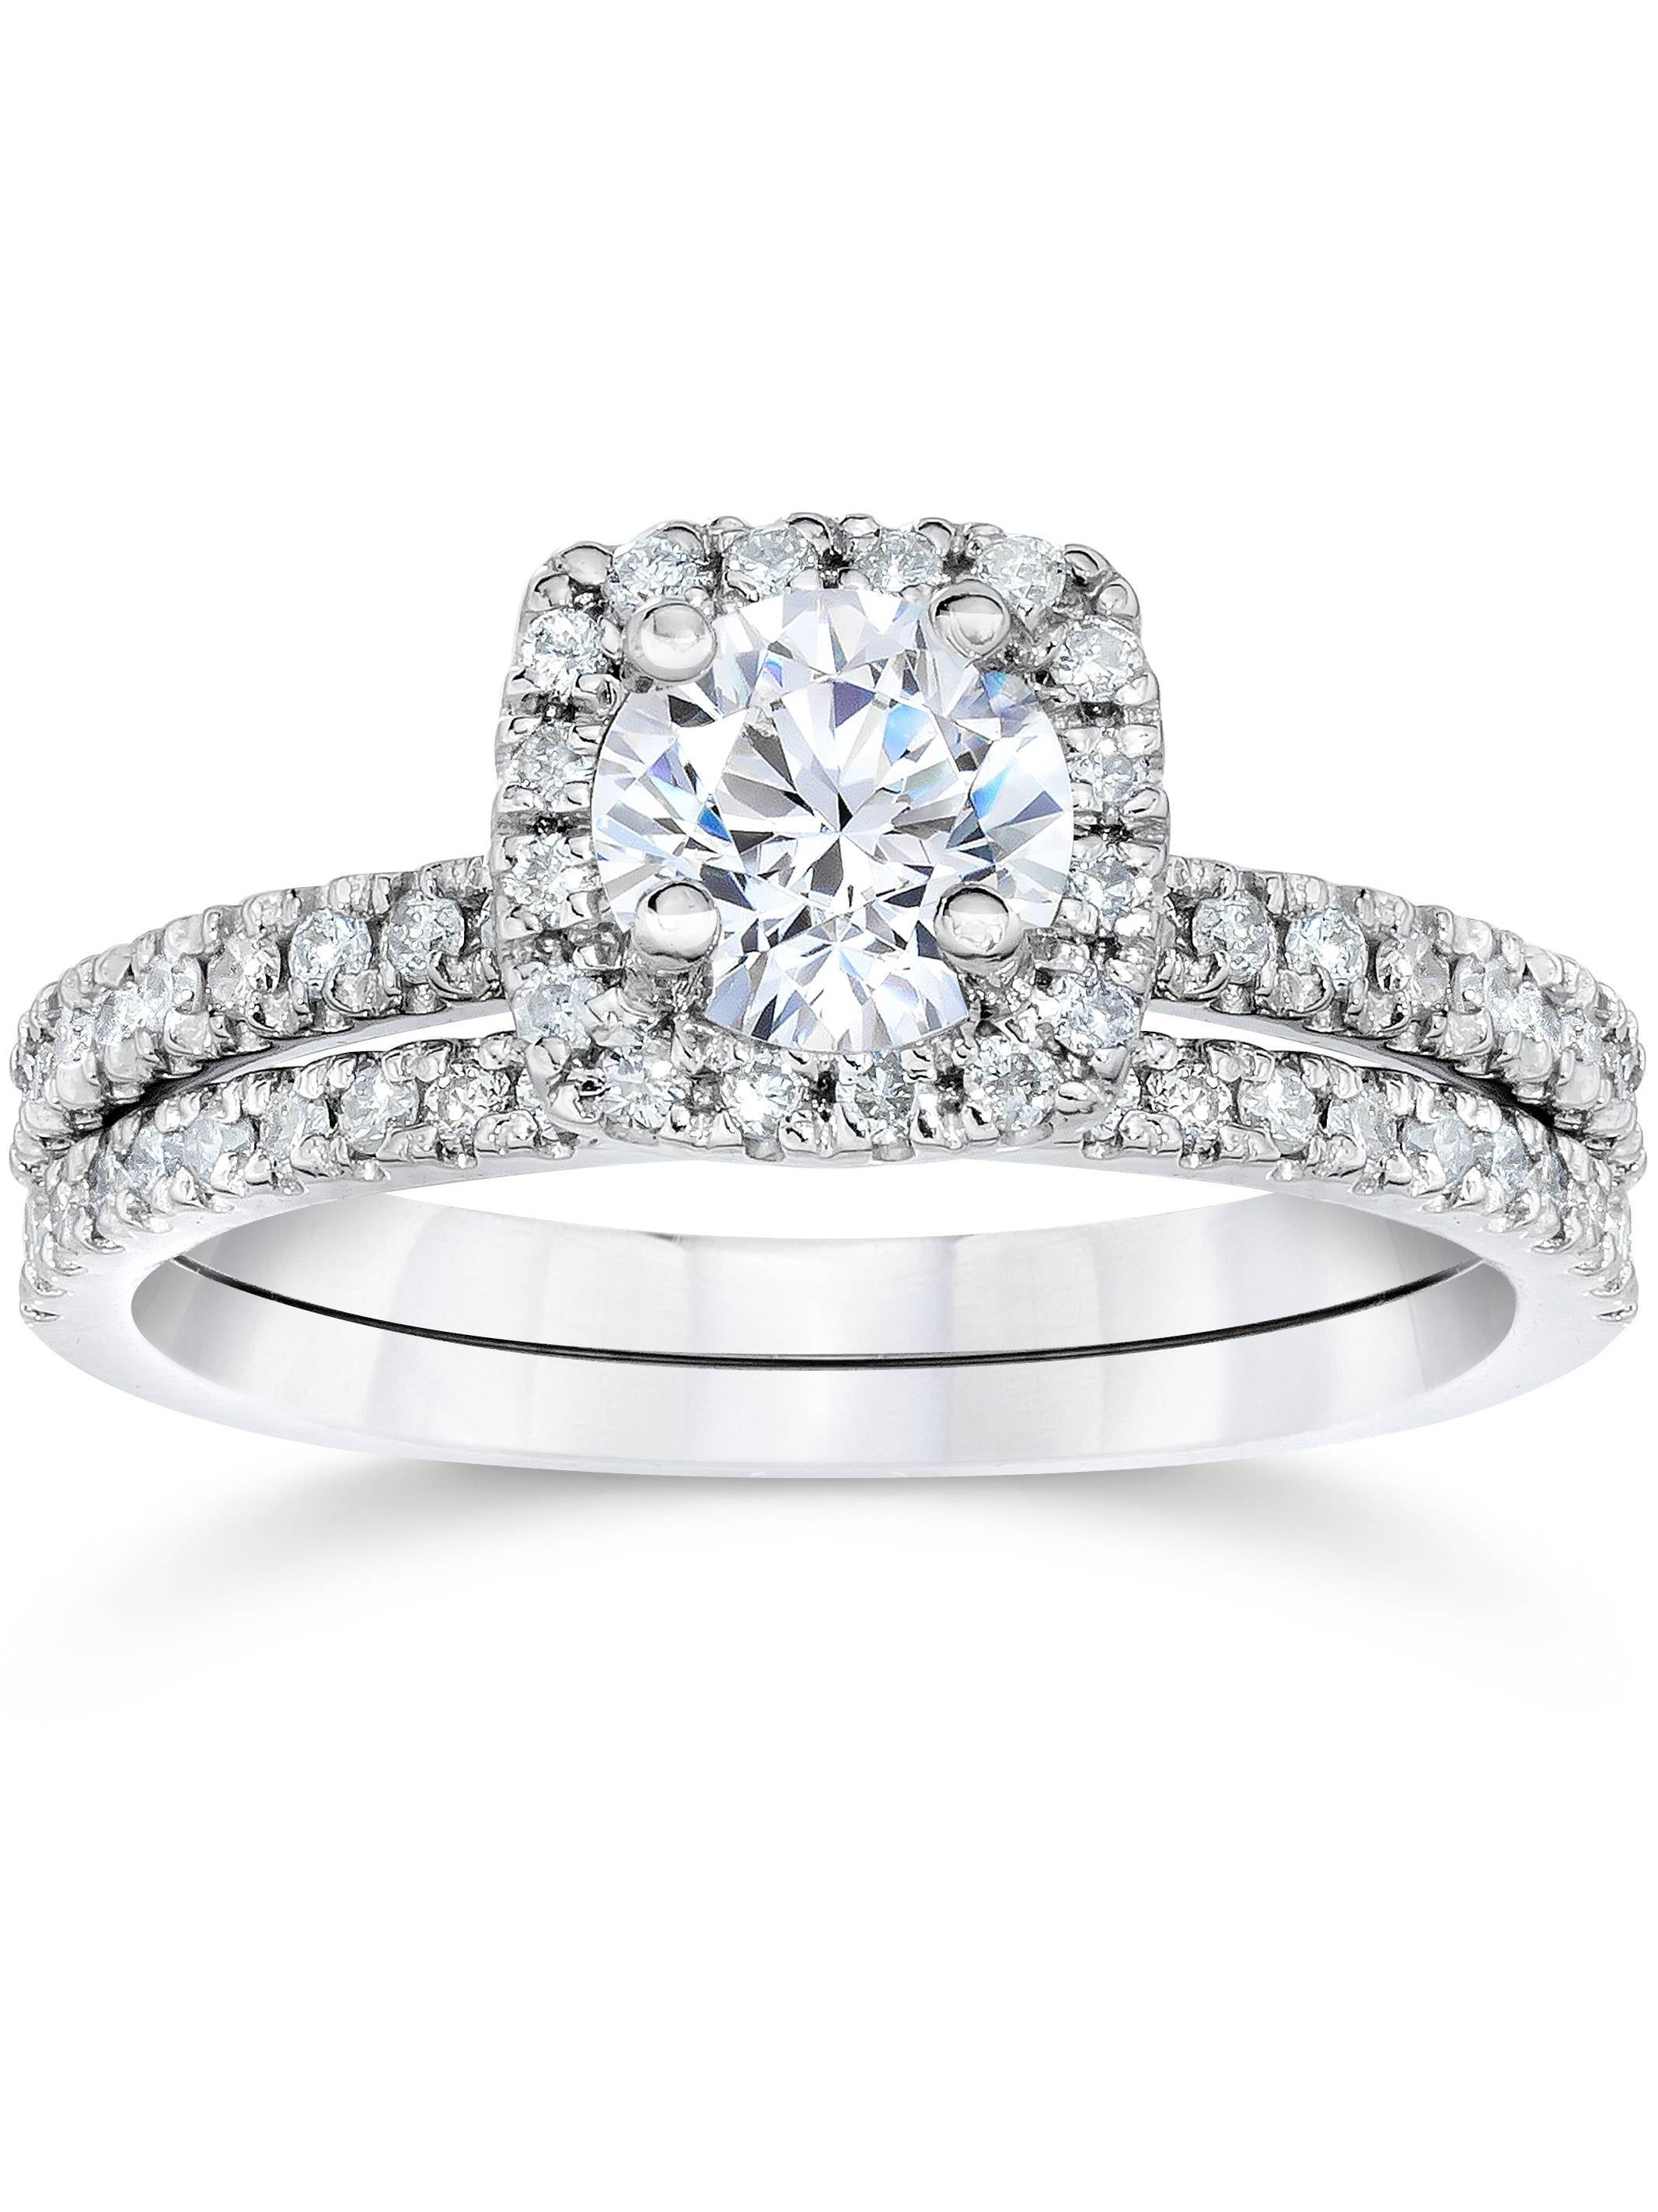 5 8Ct Cushion Halo Real Diamond Engagement Wedding Ring Set White Gold by Pompeii3